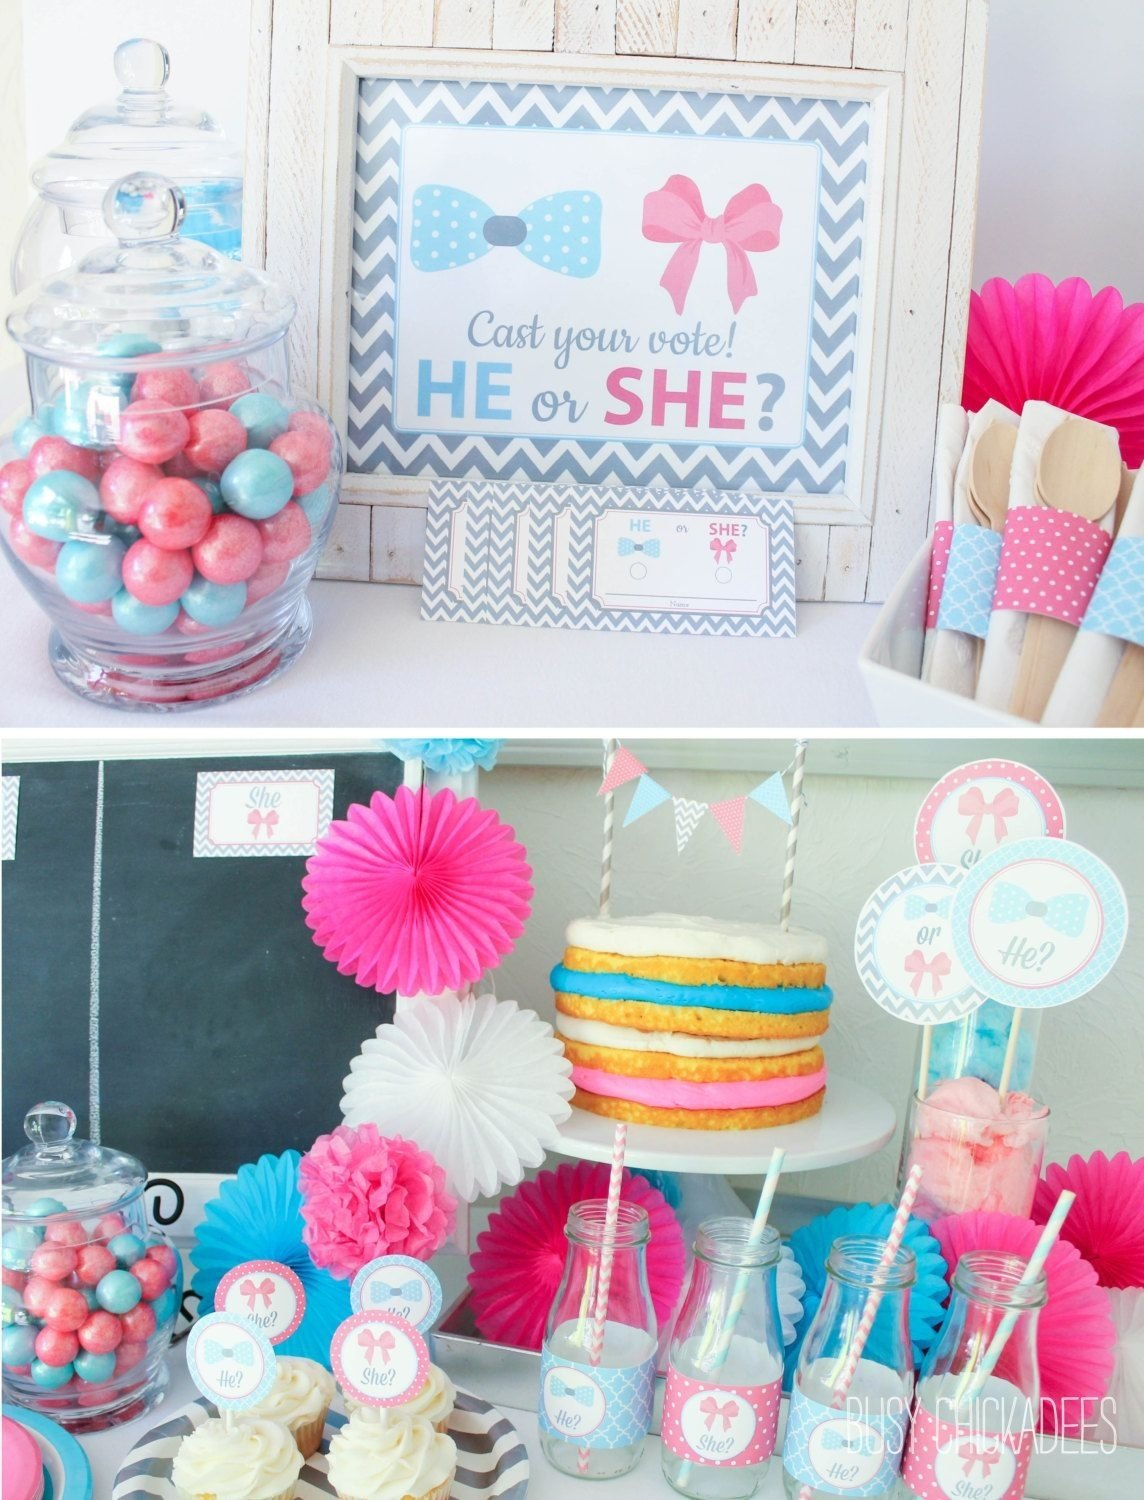 10 Ideal Baby Gender Reveal Party Ideas 10 baby gender reveal party ideas gender reveal reveal parties